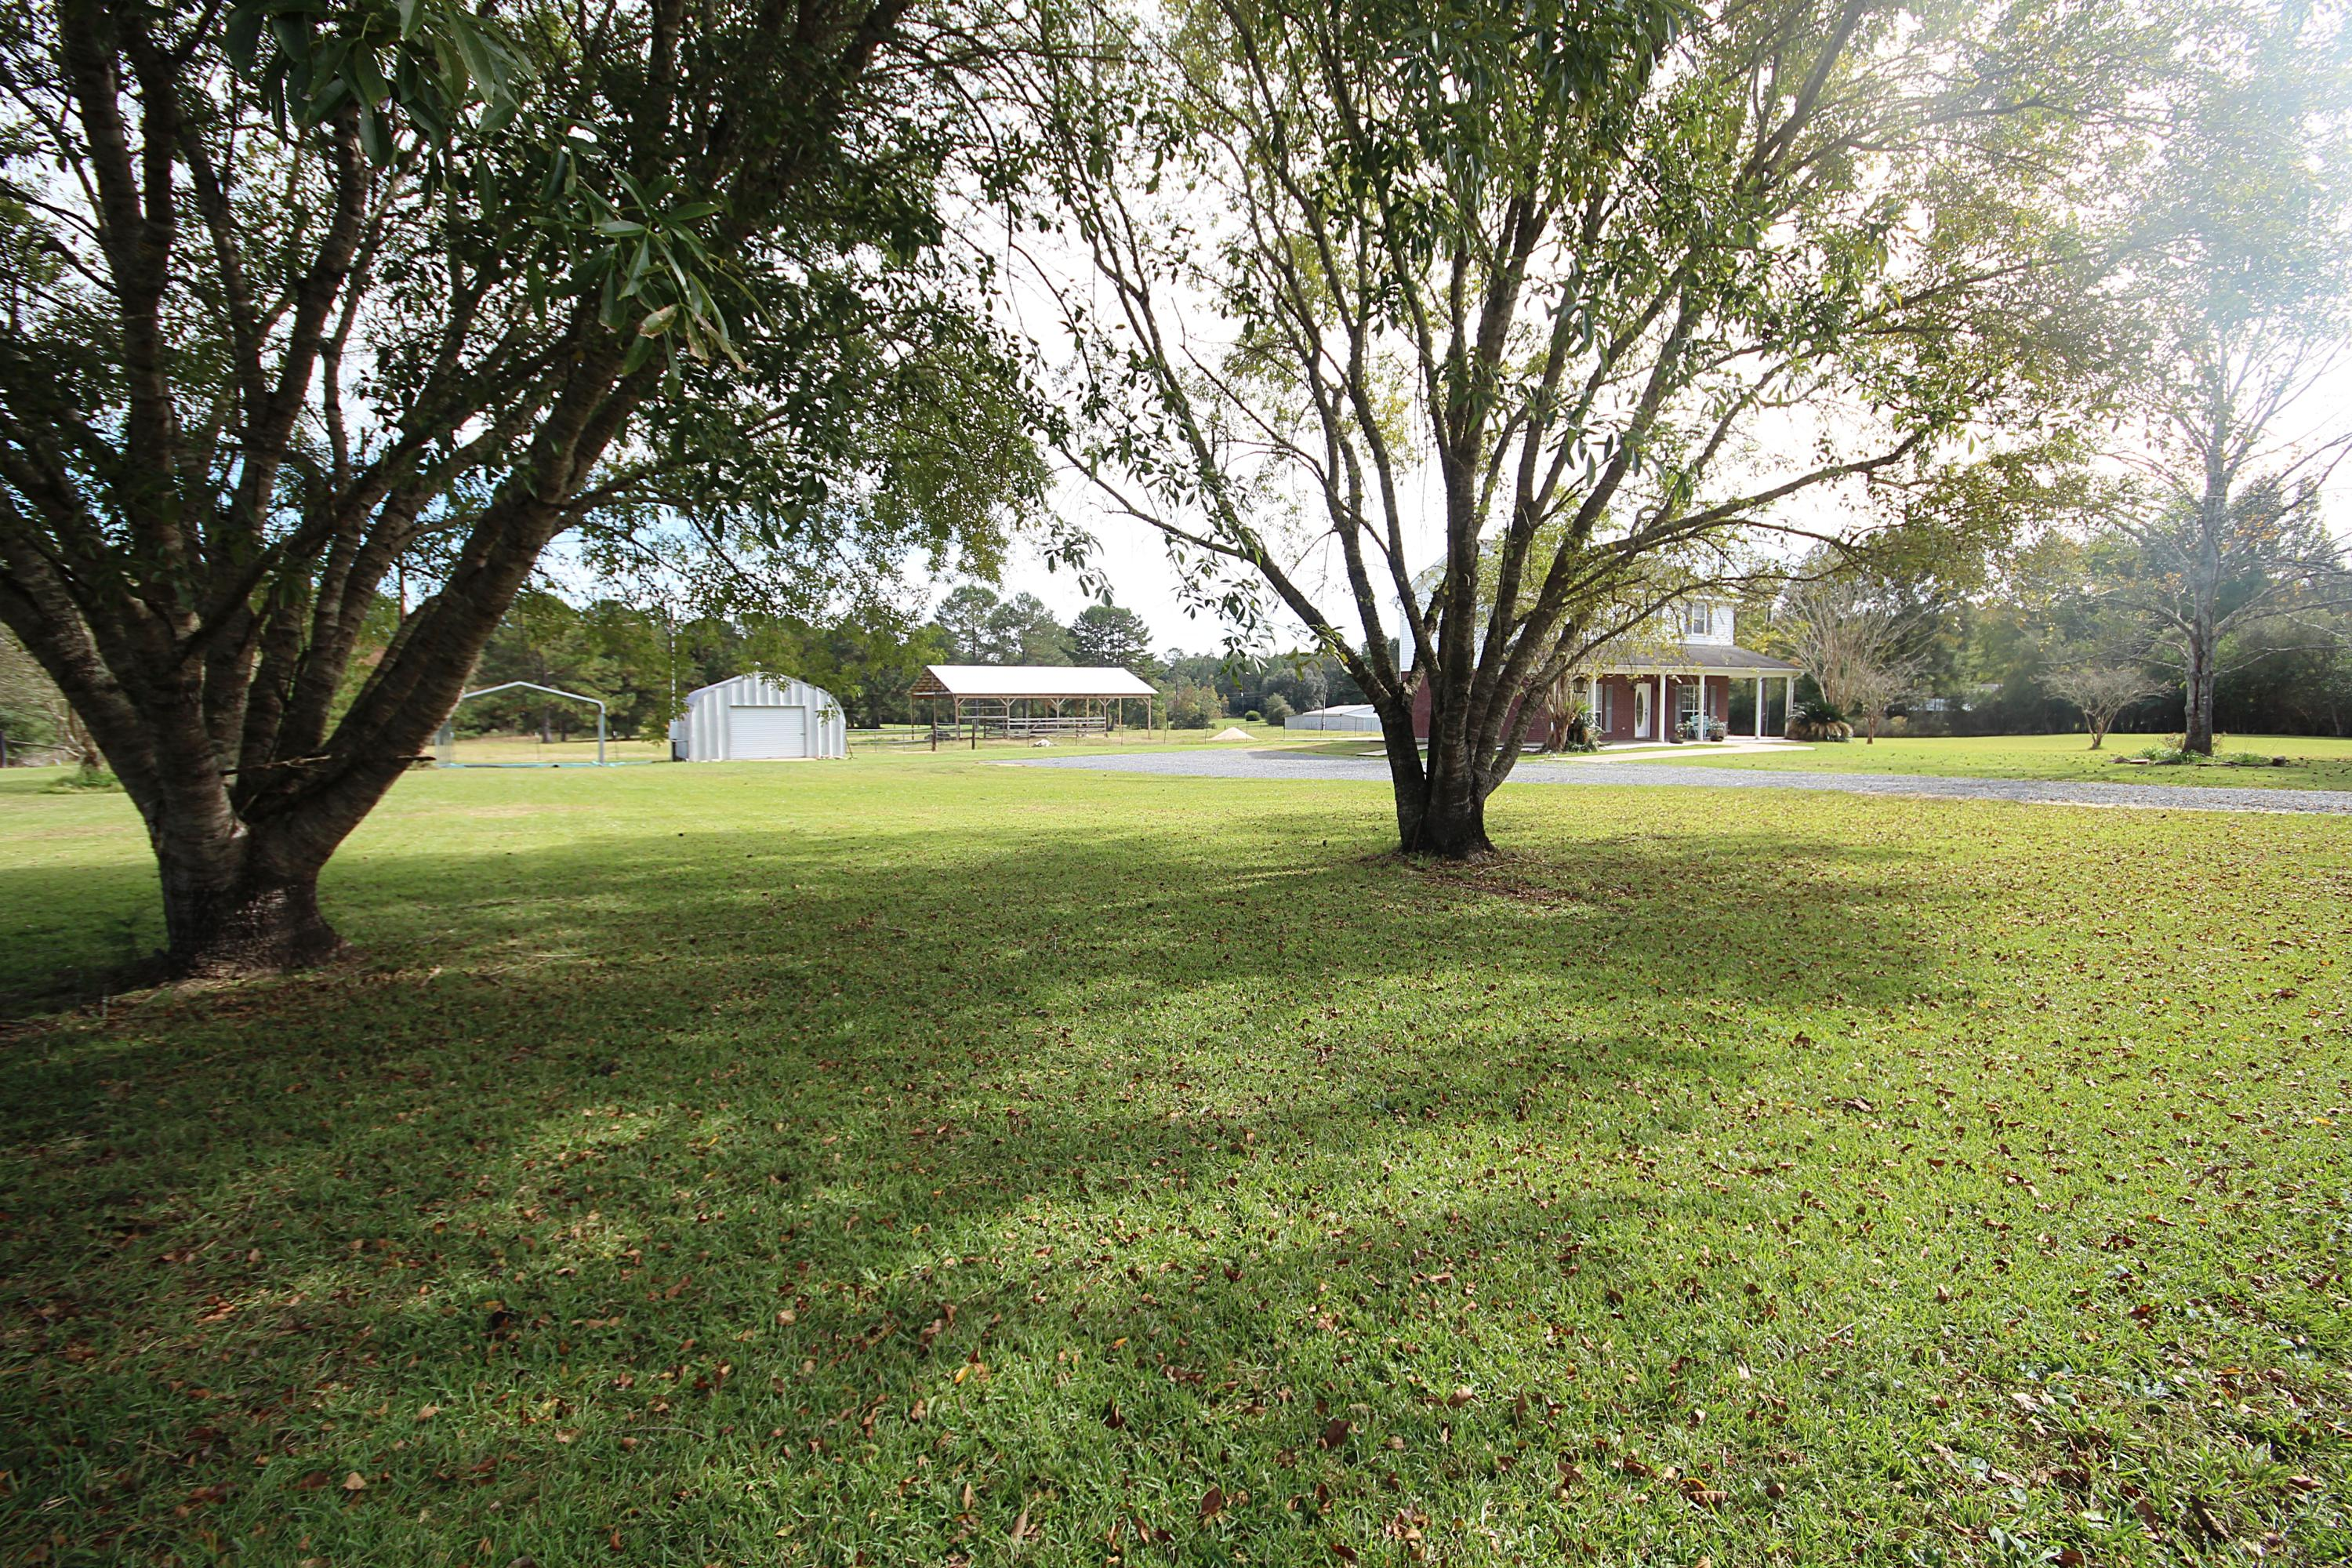 DeRidder home for sale, 1145 Three Pine Church Rd, DeRidder LA - $220,000